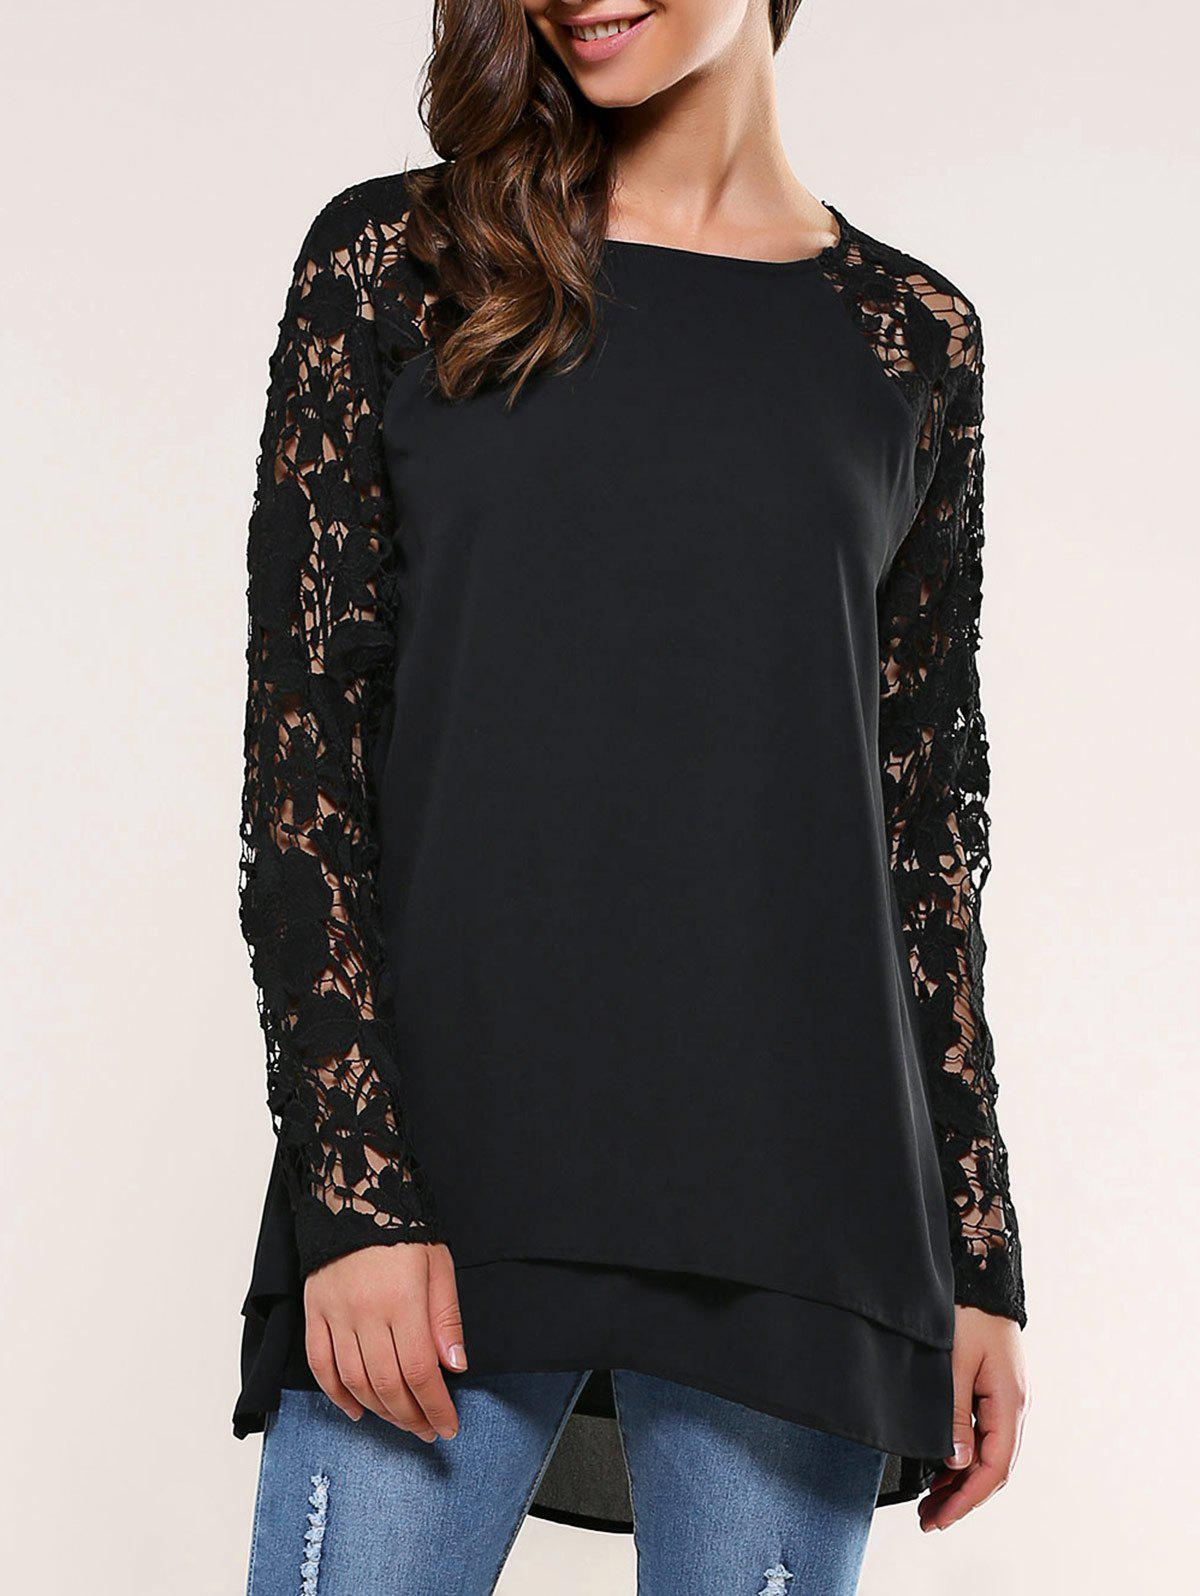 New Lace Splicing Blouse